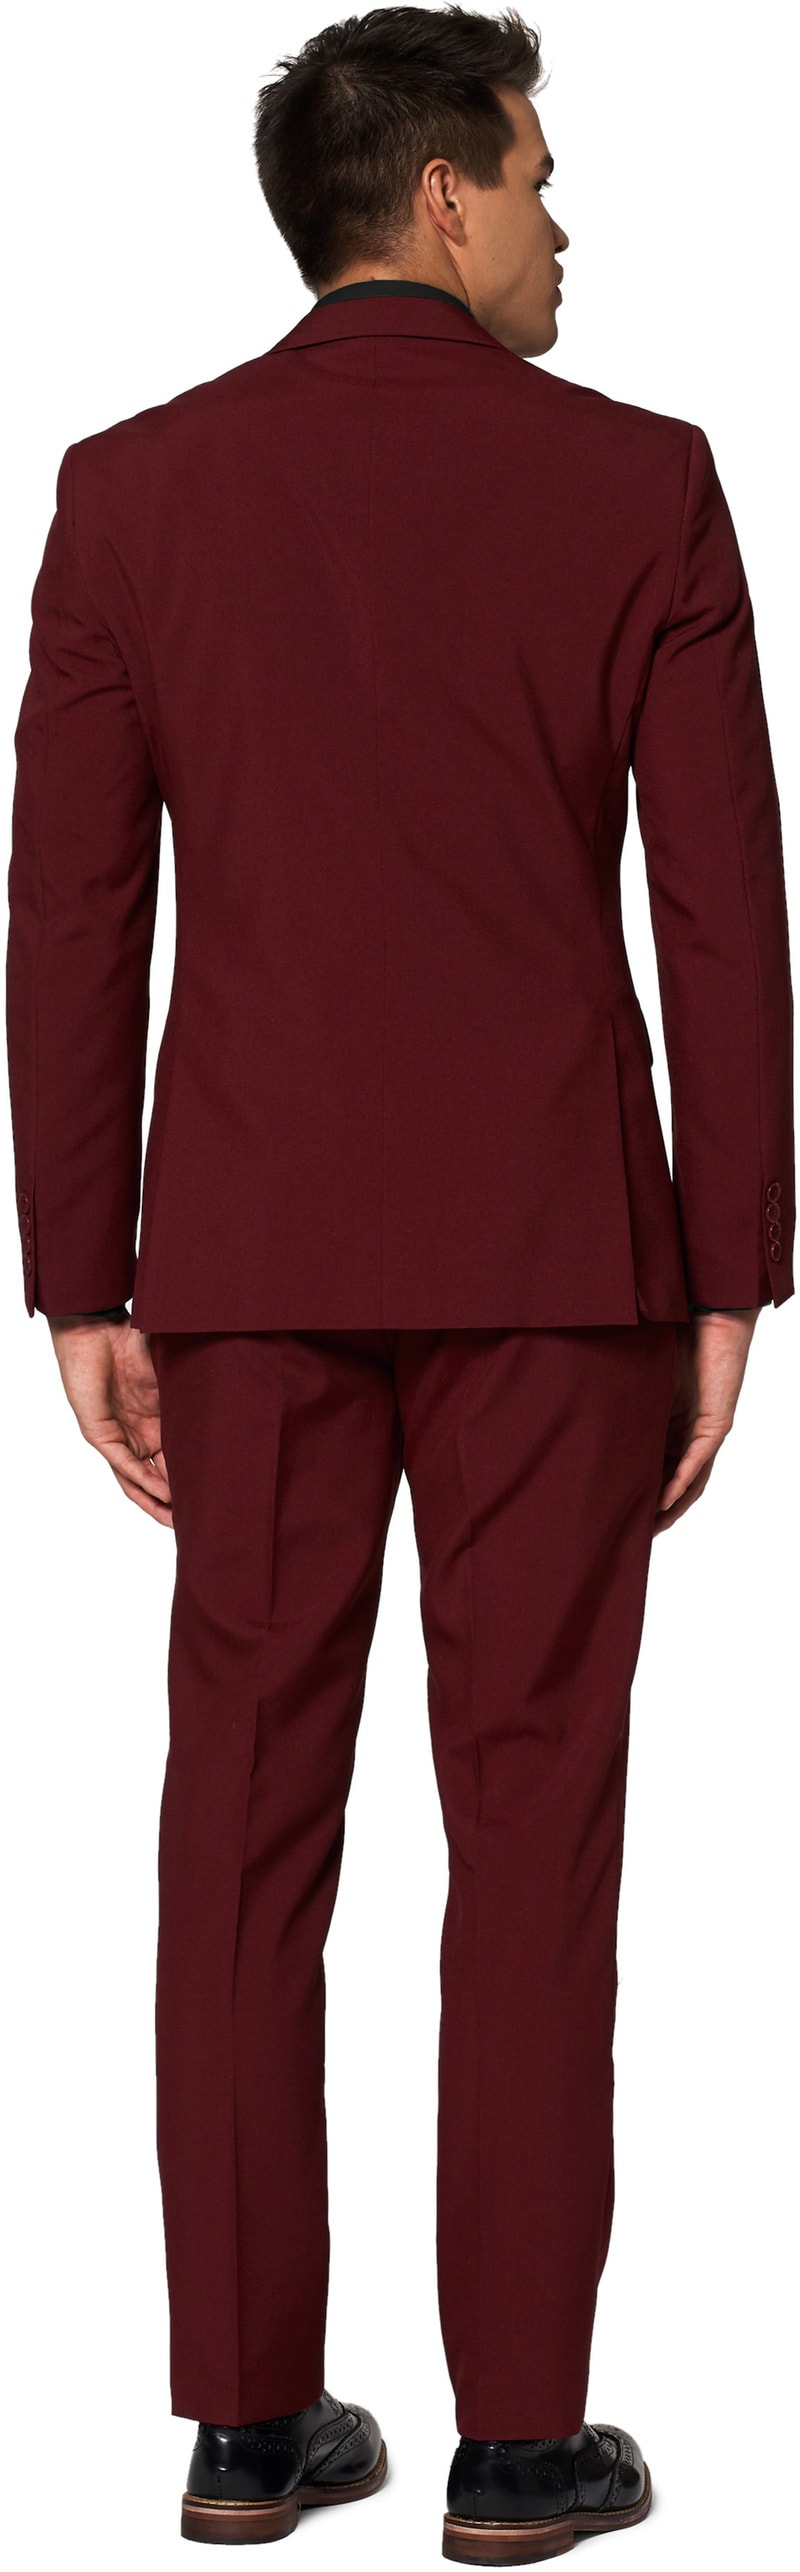 OppoSuits Blazing Burgundy Suit photo 1